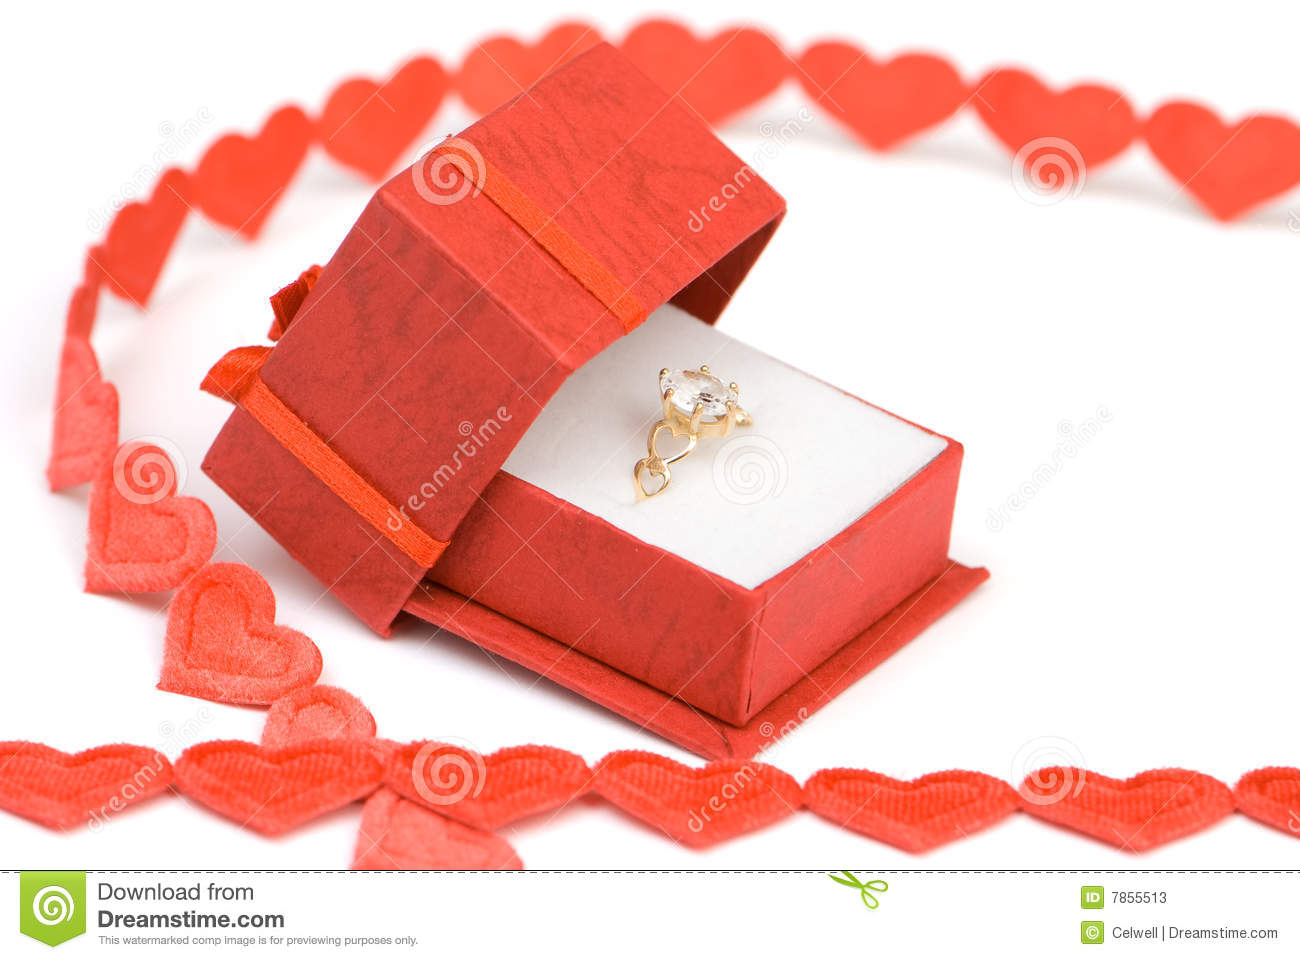 Diamond Engagement Ring In Box On Valentines Day Ready For Proposal